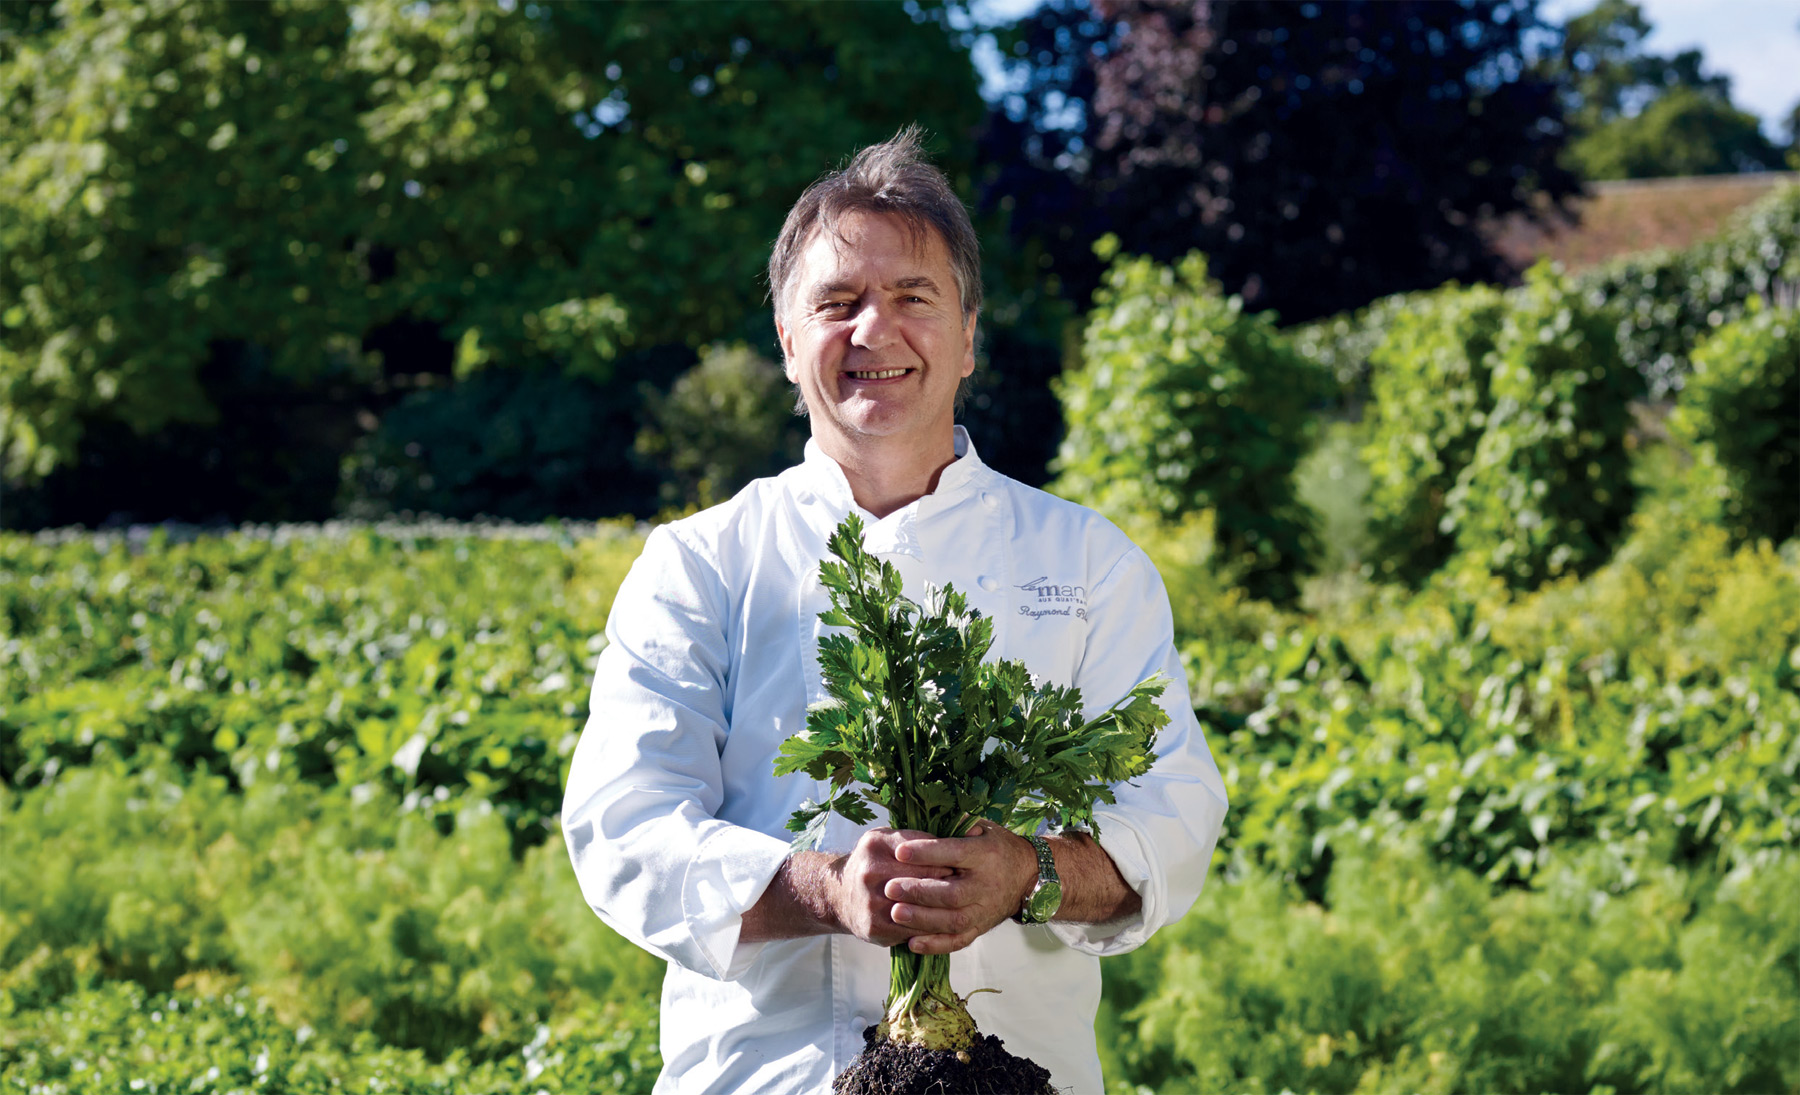 Why Raymond Blanc is Outstanding in his Field